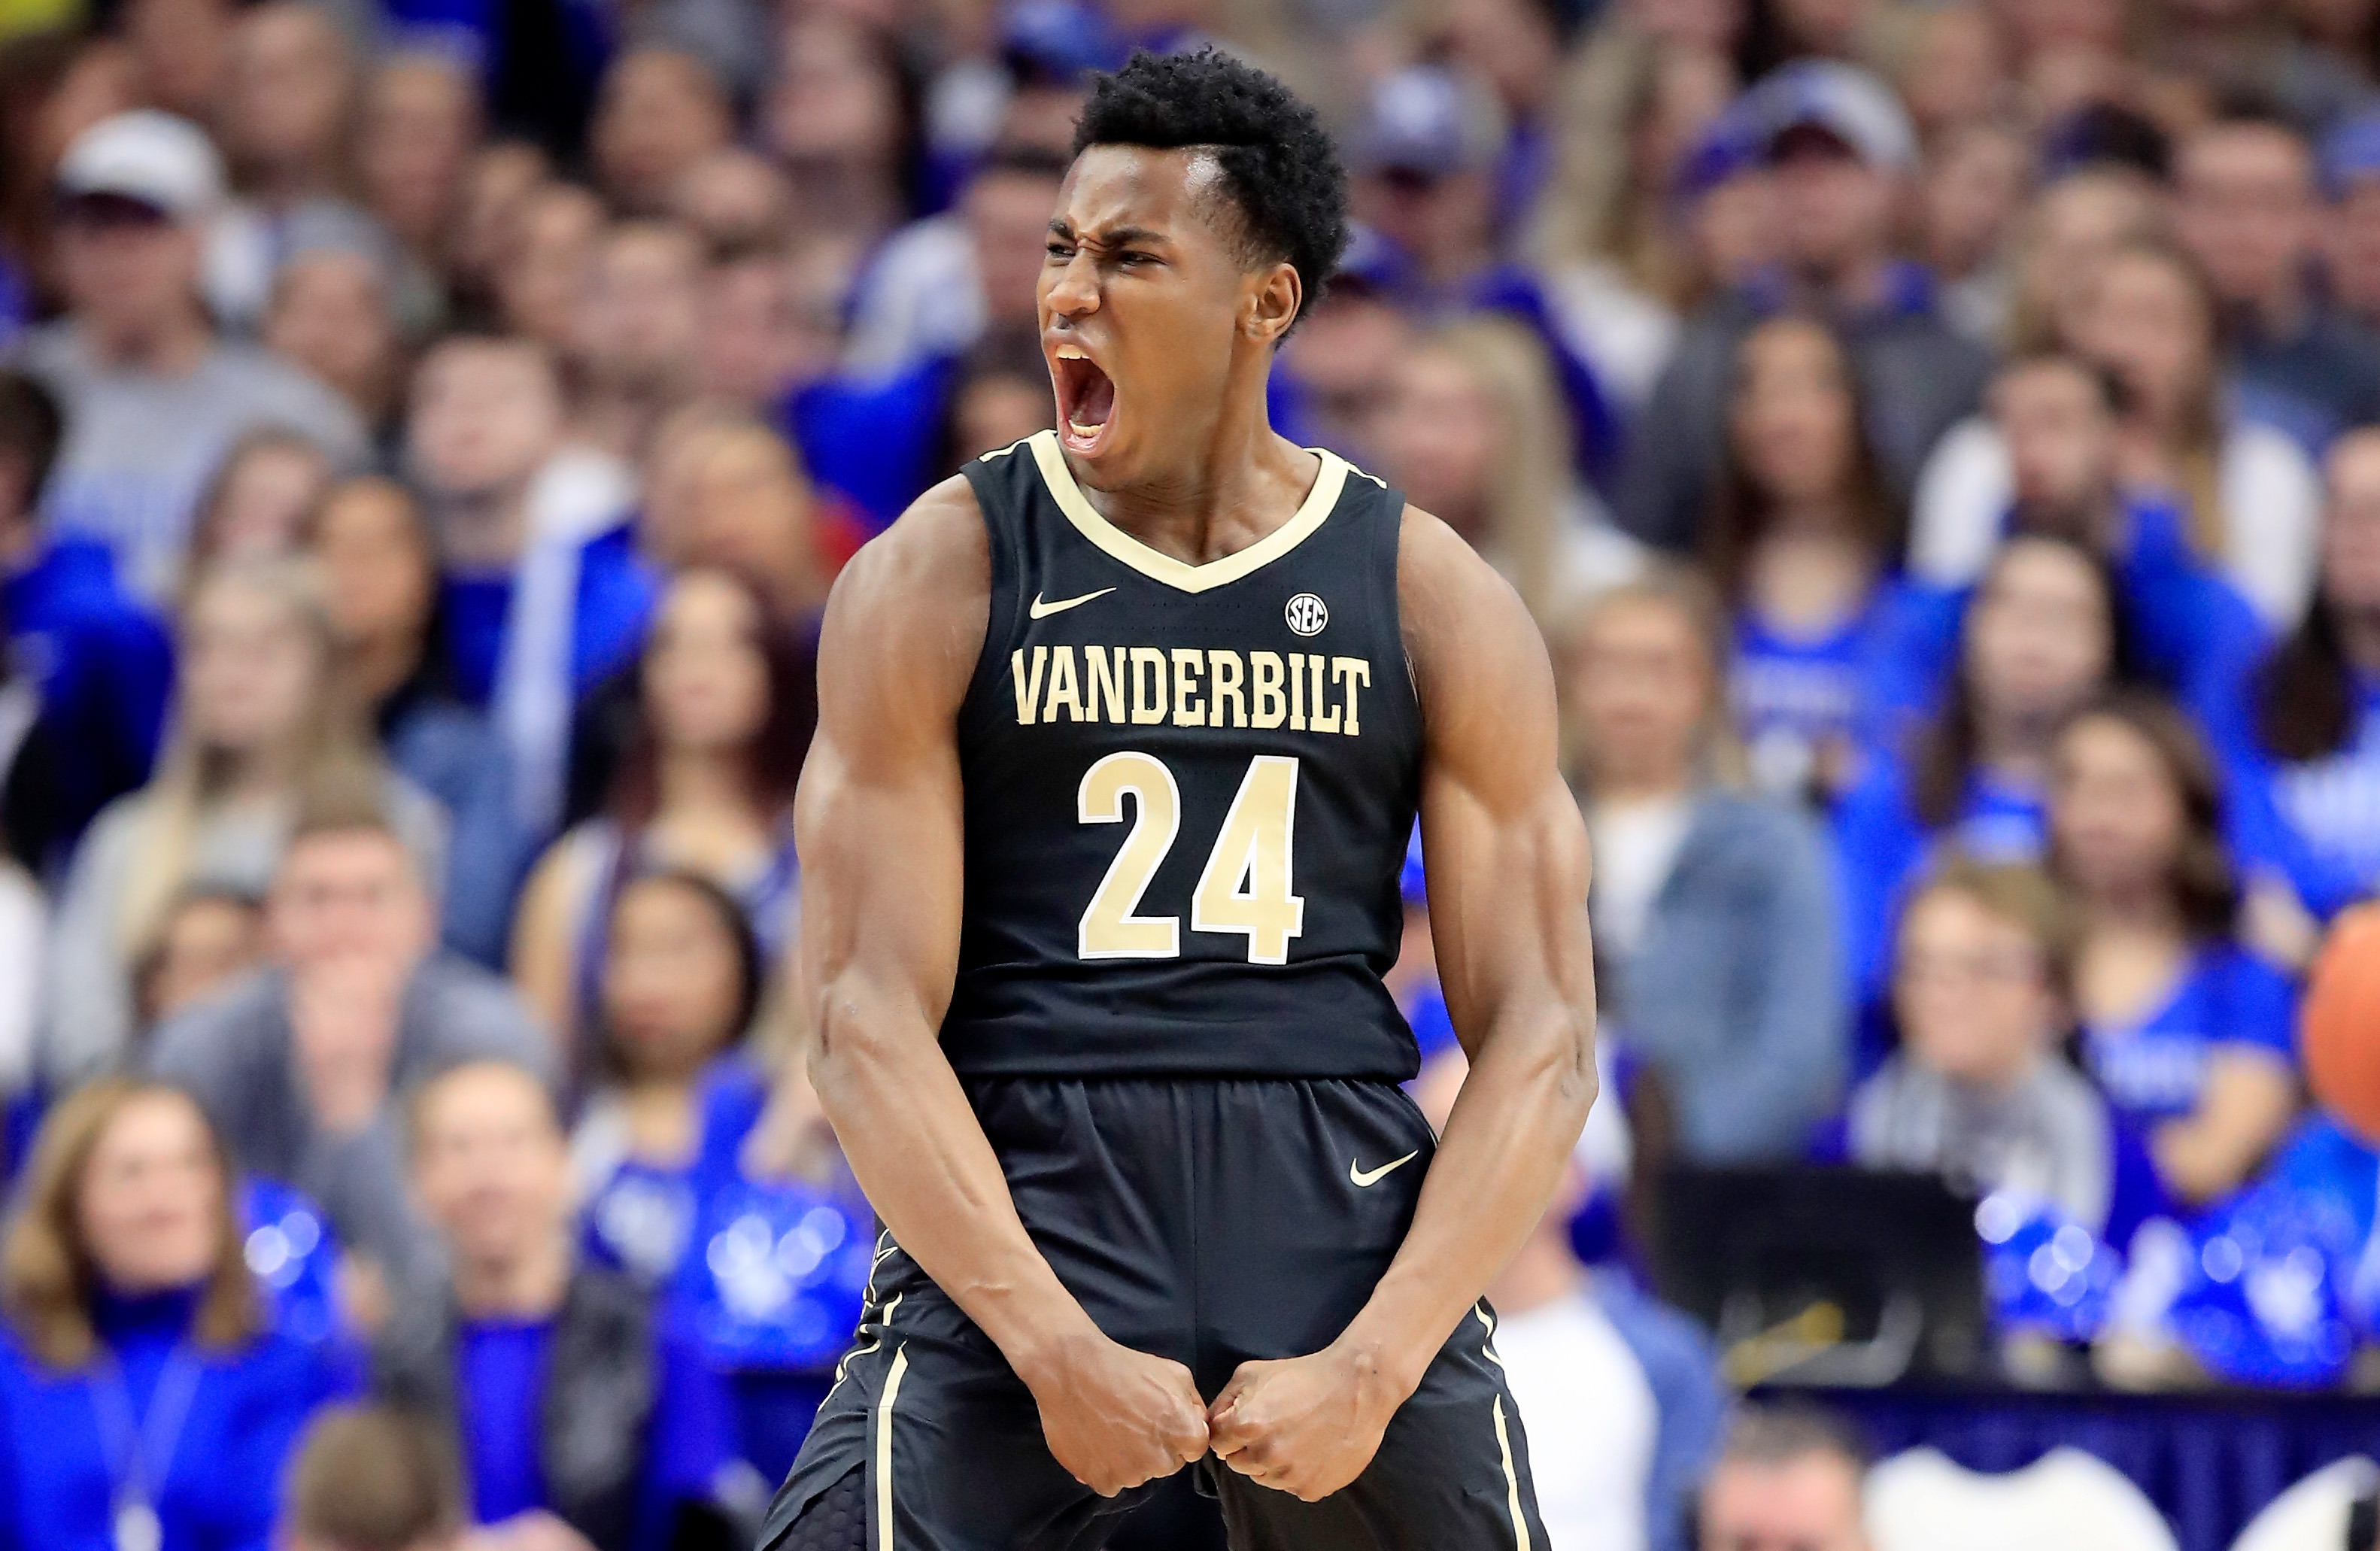 Aaron Nesmith of the Vanderbilt Commodores will play for the Boston Celtics in 2020